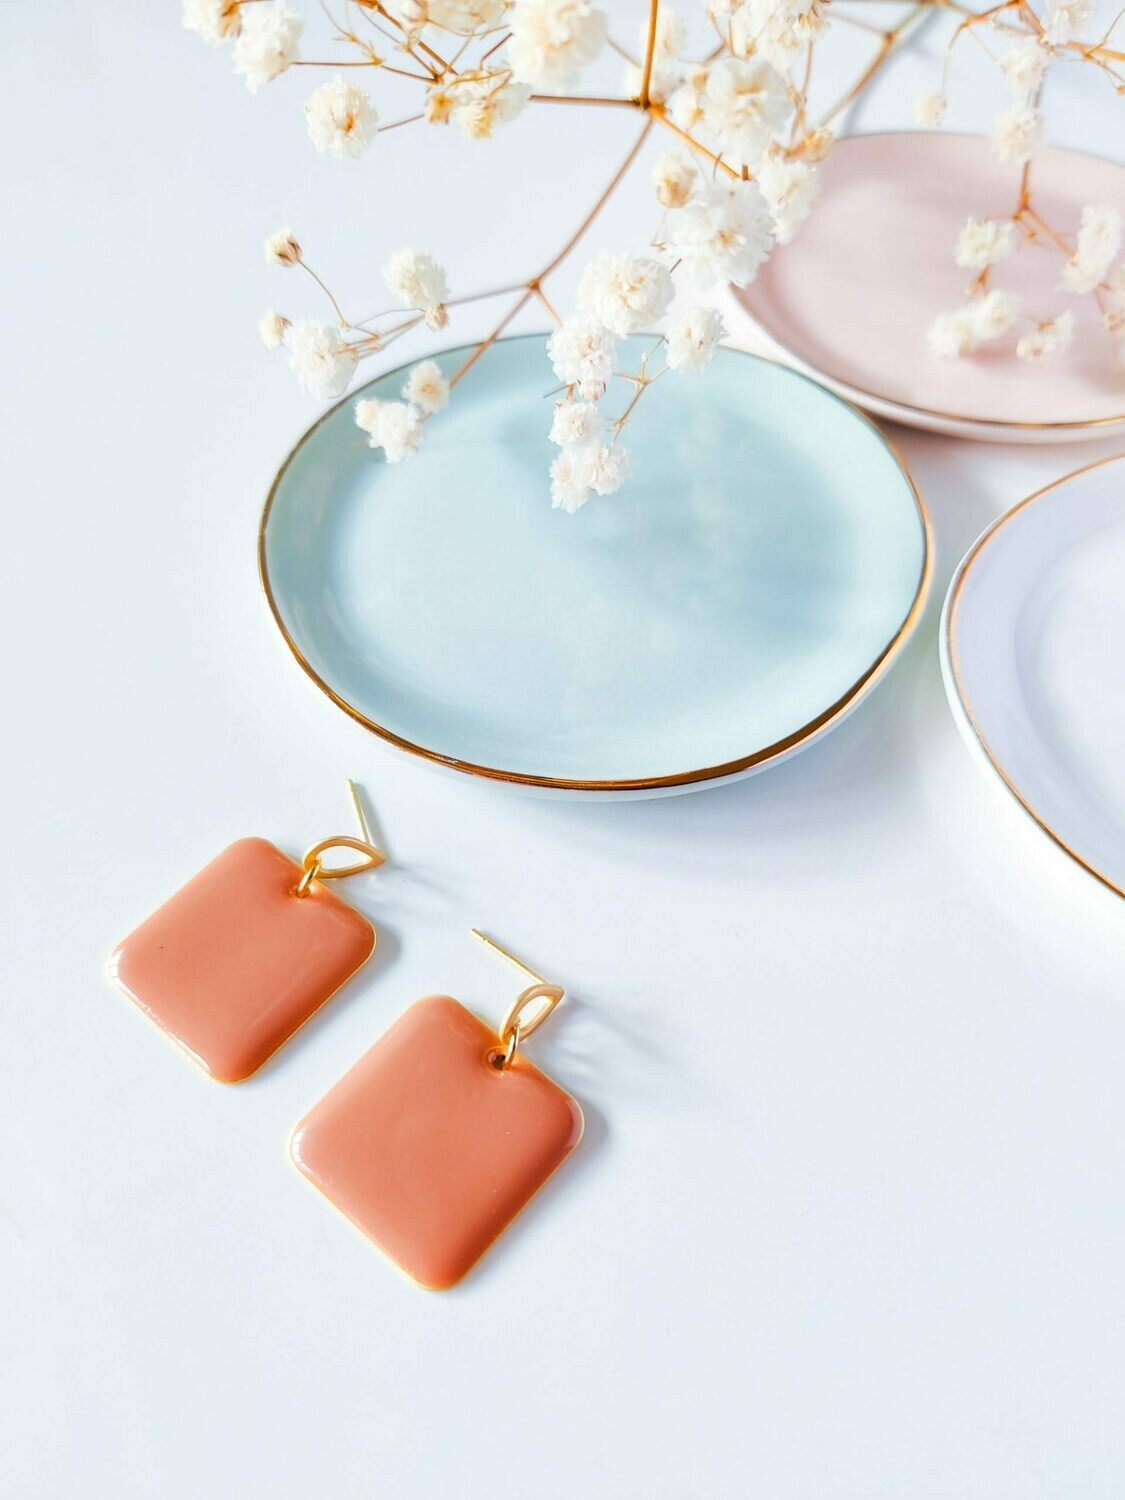 Isa & Roza | Golden drop earrings with old pink pendant